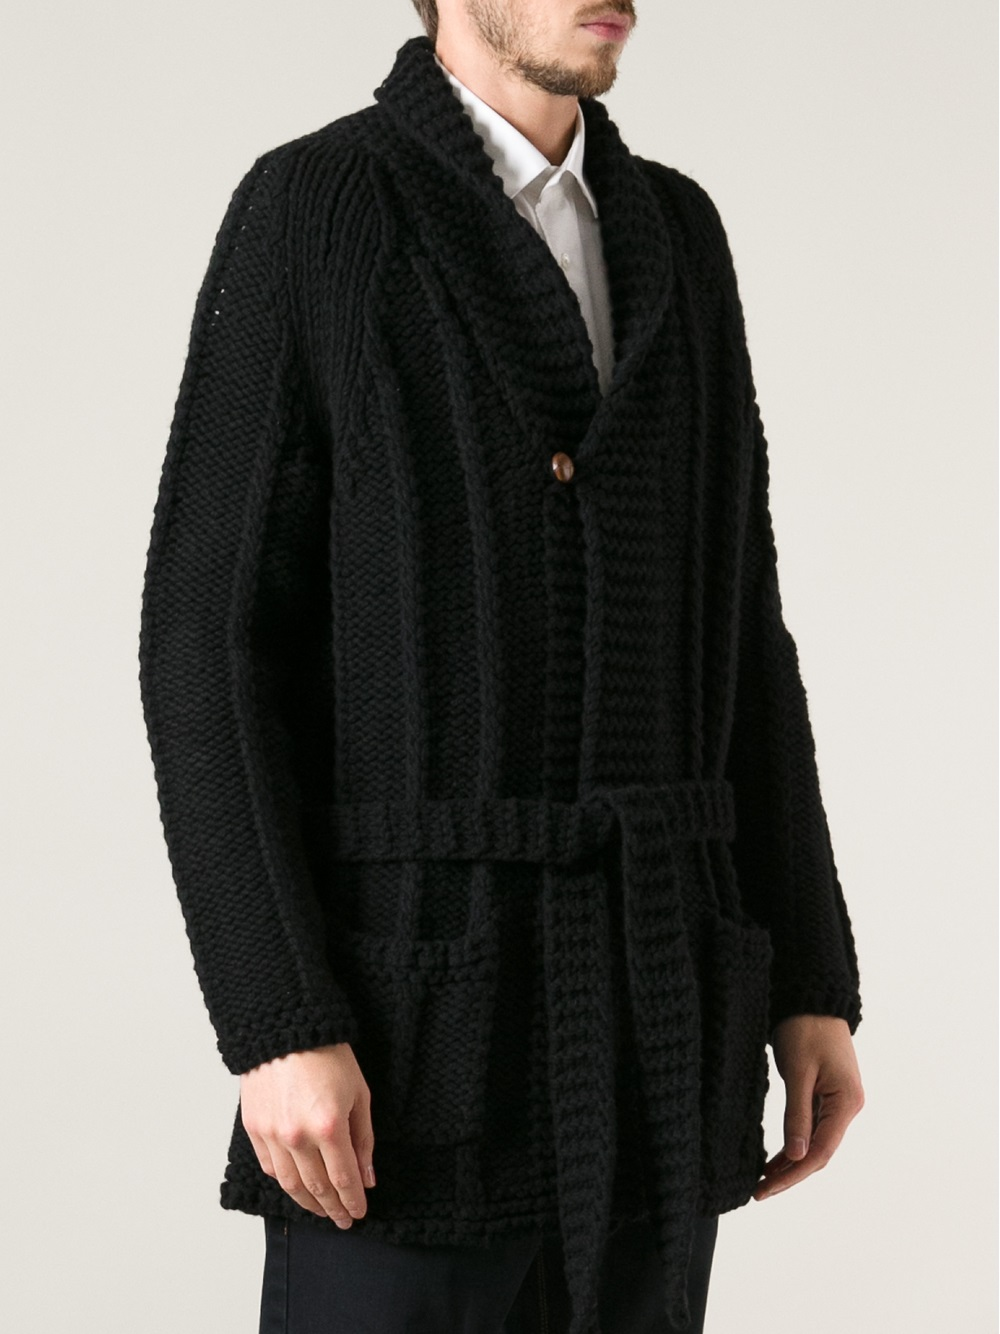 A cardigan sweater is a winter-wardrobe essential for both men and women. Find new designs that will bring delight and comfort. Whether loose or buttoned-up as cardigans, sweaters like these are unmatched in their versatile ability to simply and easily add the finishing touch to a look.A cardigan sweater is a winter-wardrobe essential for both.